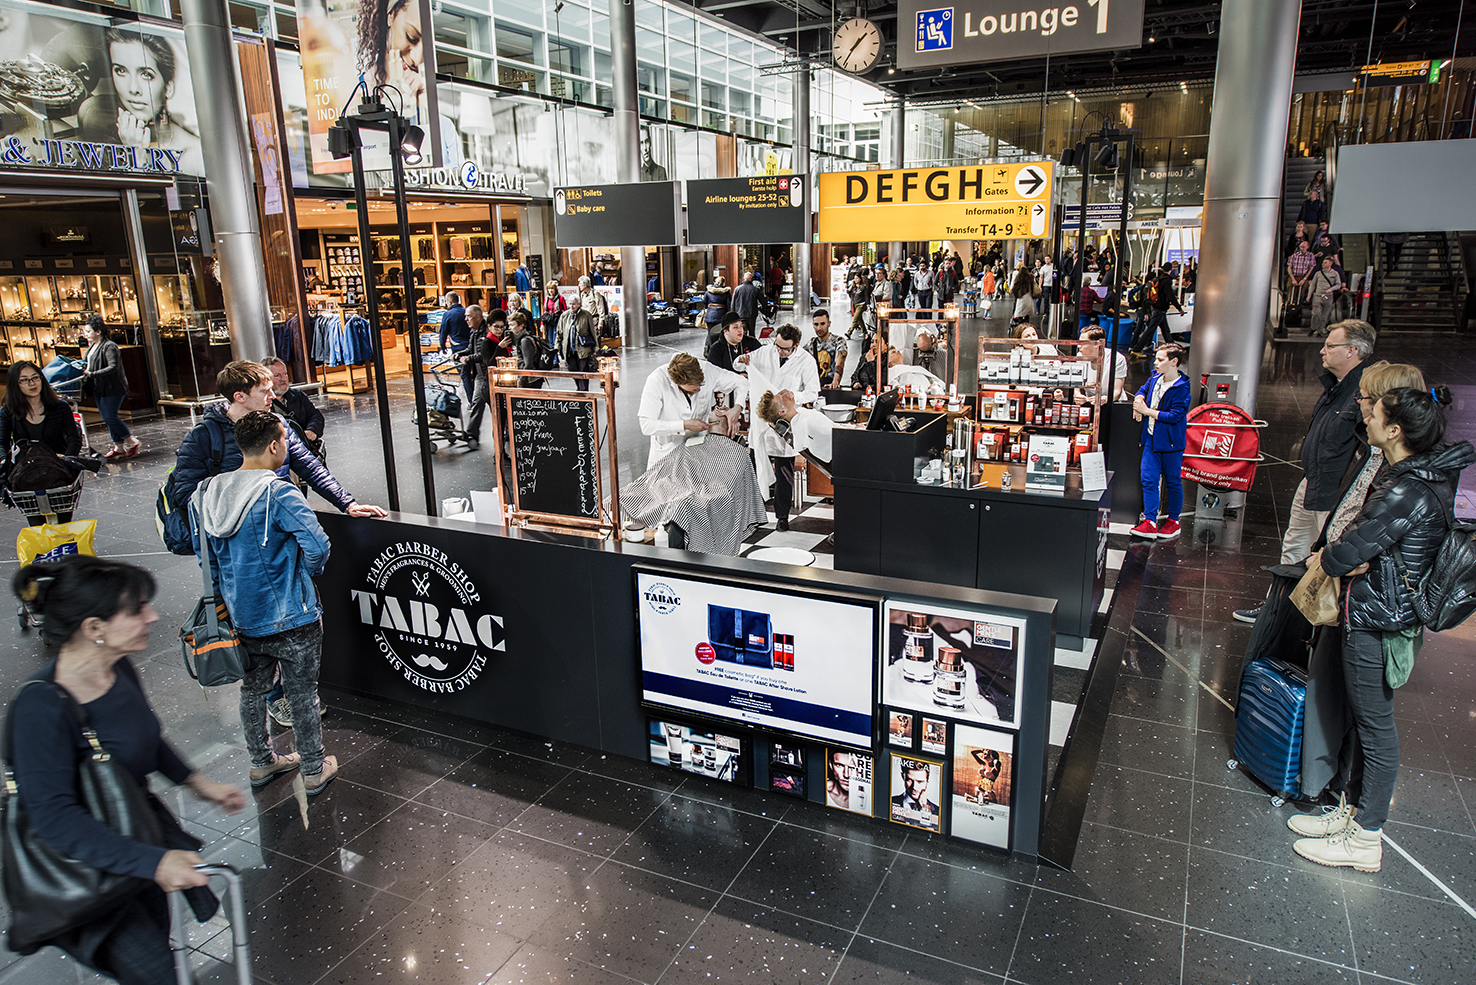 Tabac pop up - Amsterdam Airport Schiphol